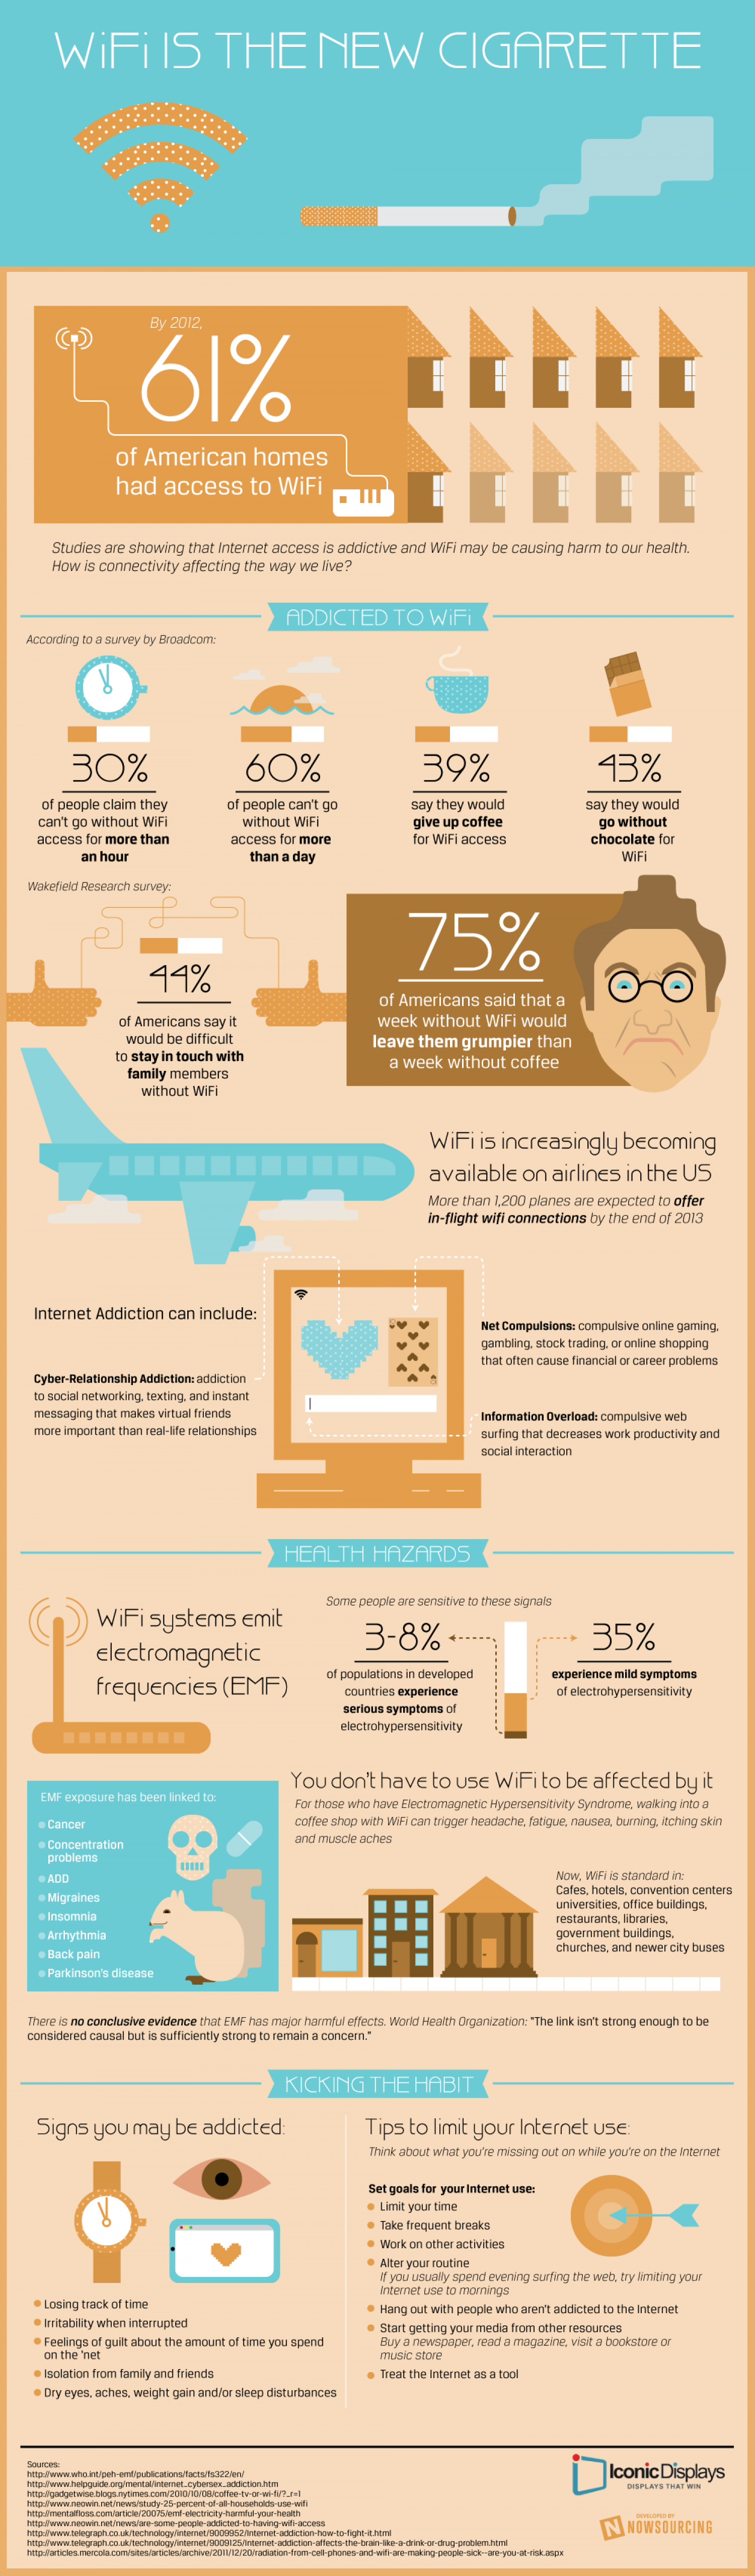 WiFi is the New Cigarette Infographic